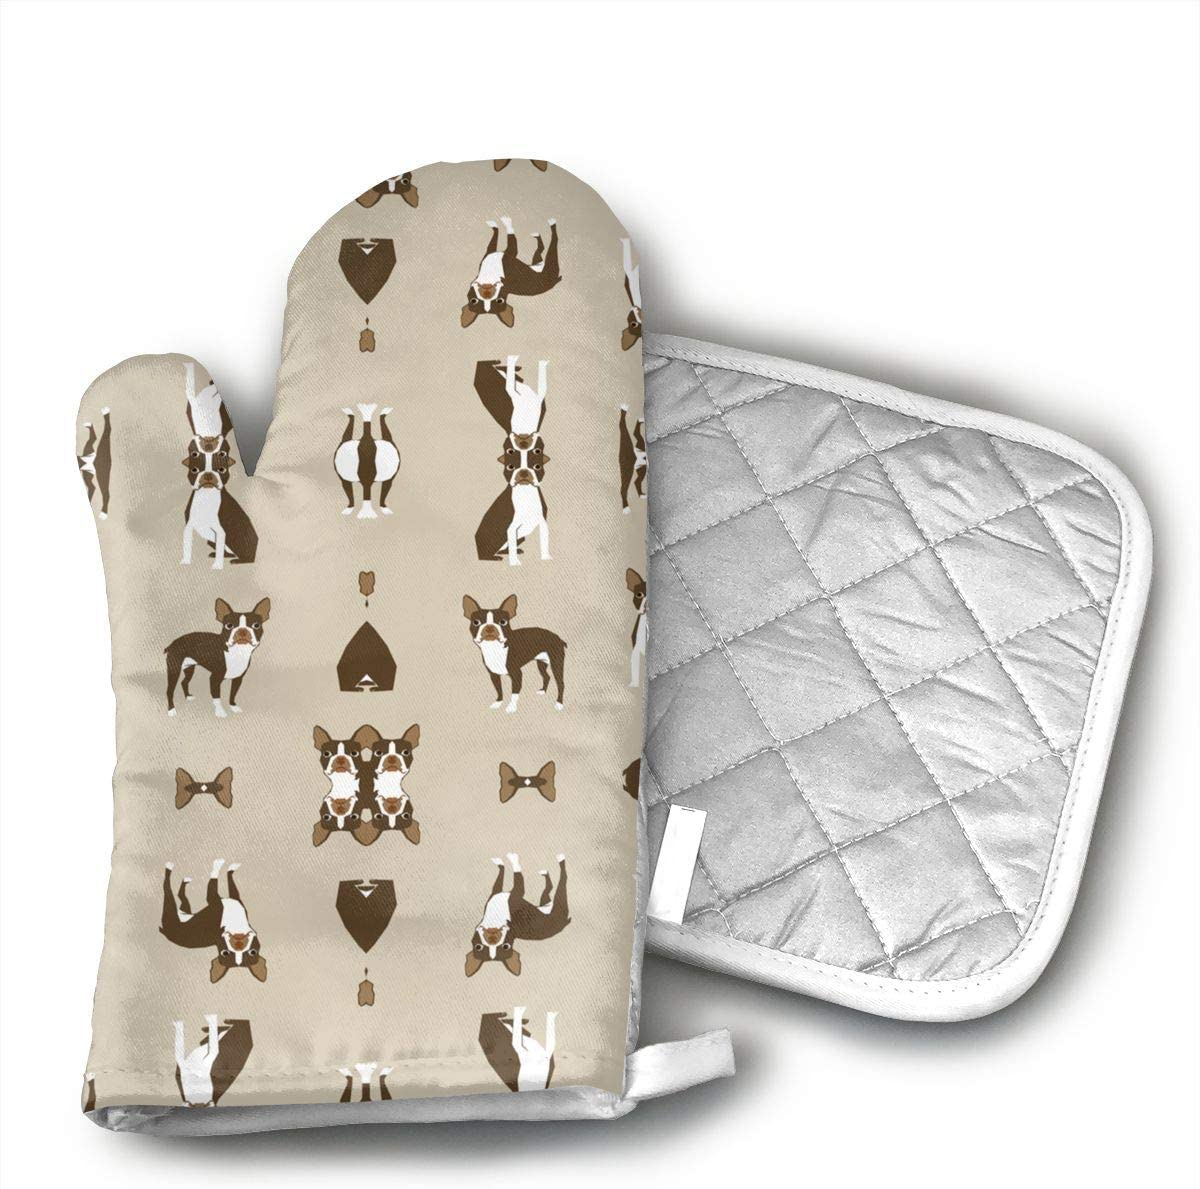 Brown Boston Terrier Dog Fabric 3089(2794) Oven Mitts Heat Resistant Kitchen Gloves and Potholders BBQ Gloves-Cotton Pot Holders Non Slip Oven Gloves for Kitchen